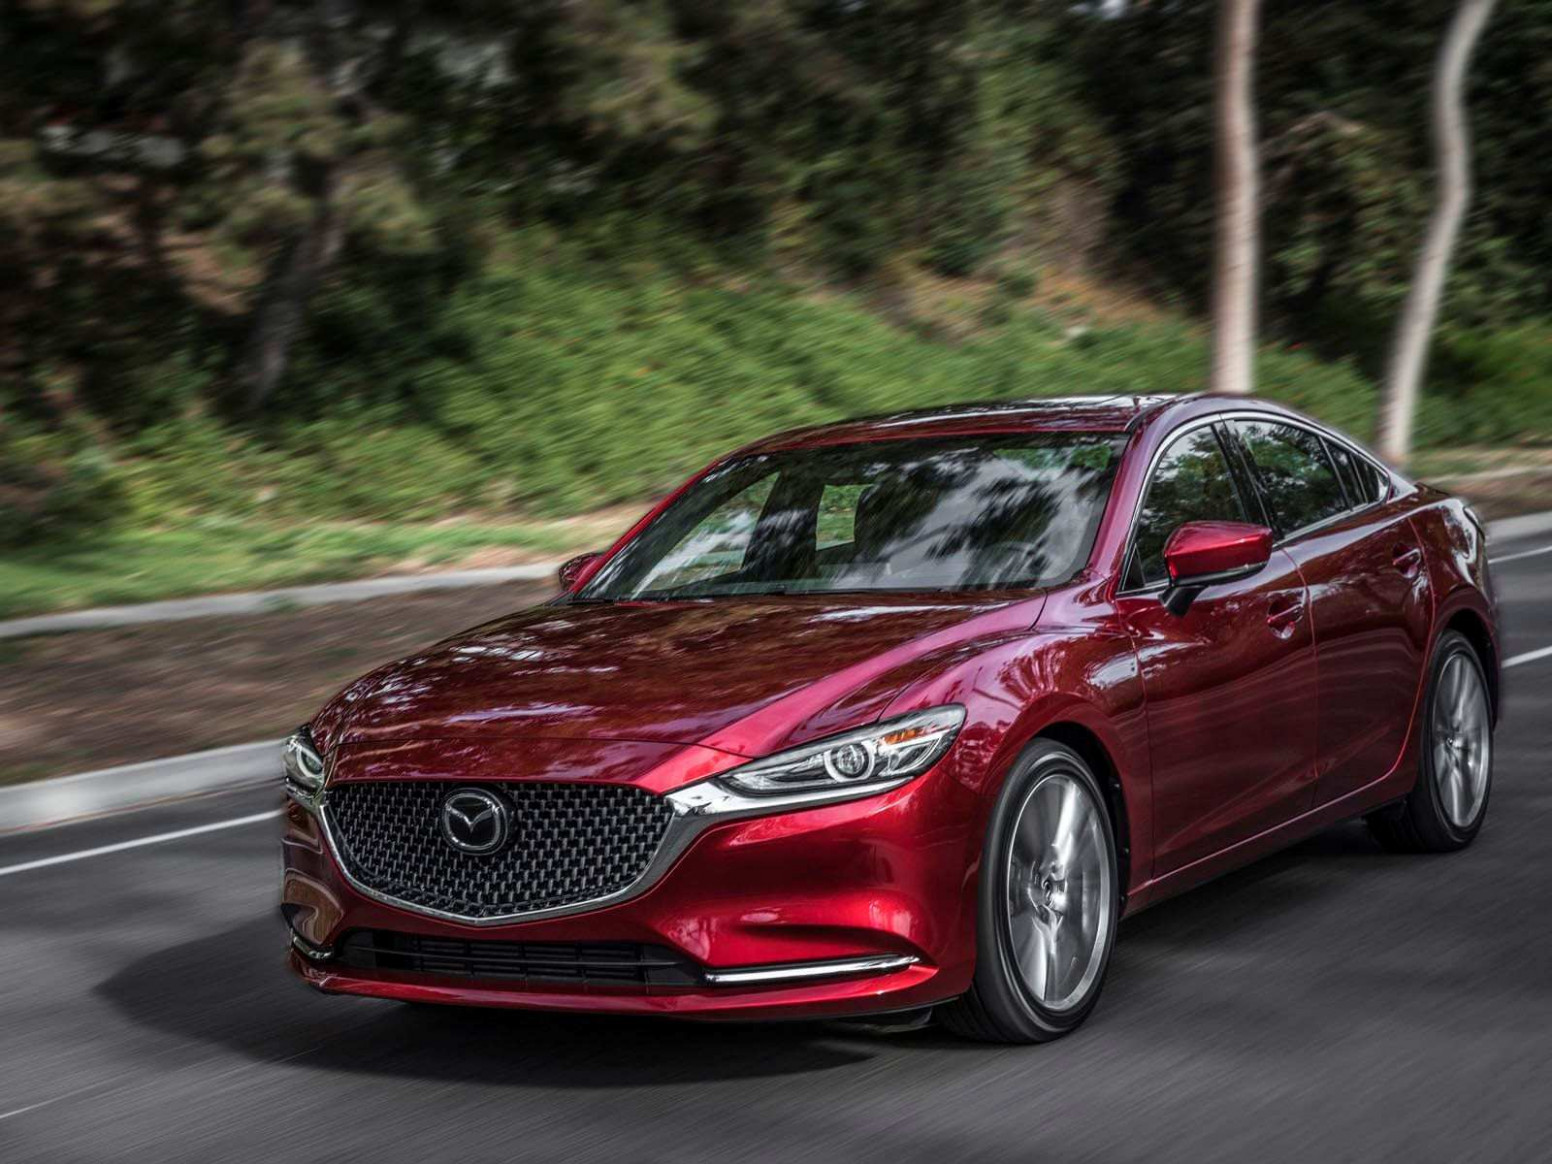 8 Gallery of 8 Mazda 8 All Wheel Drive Release Date with 8 ...